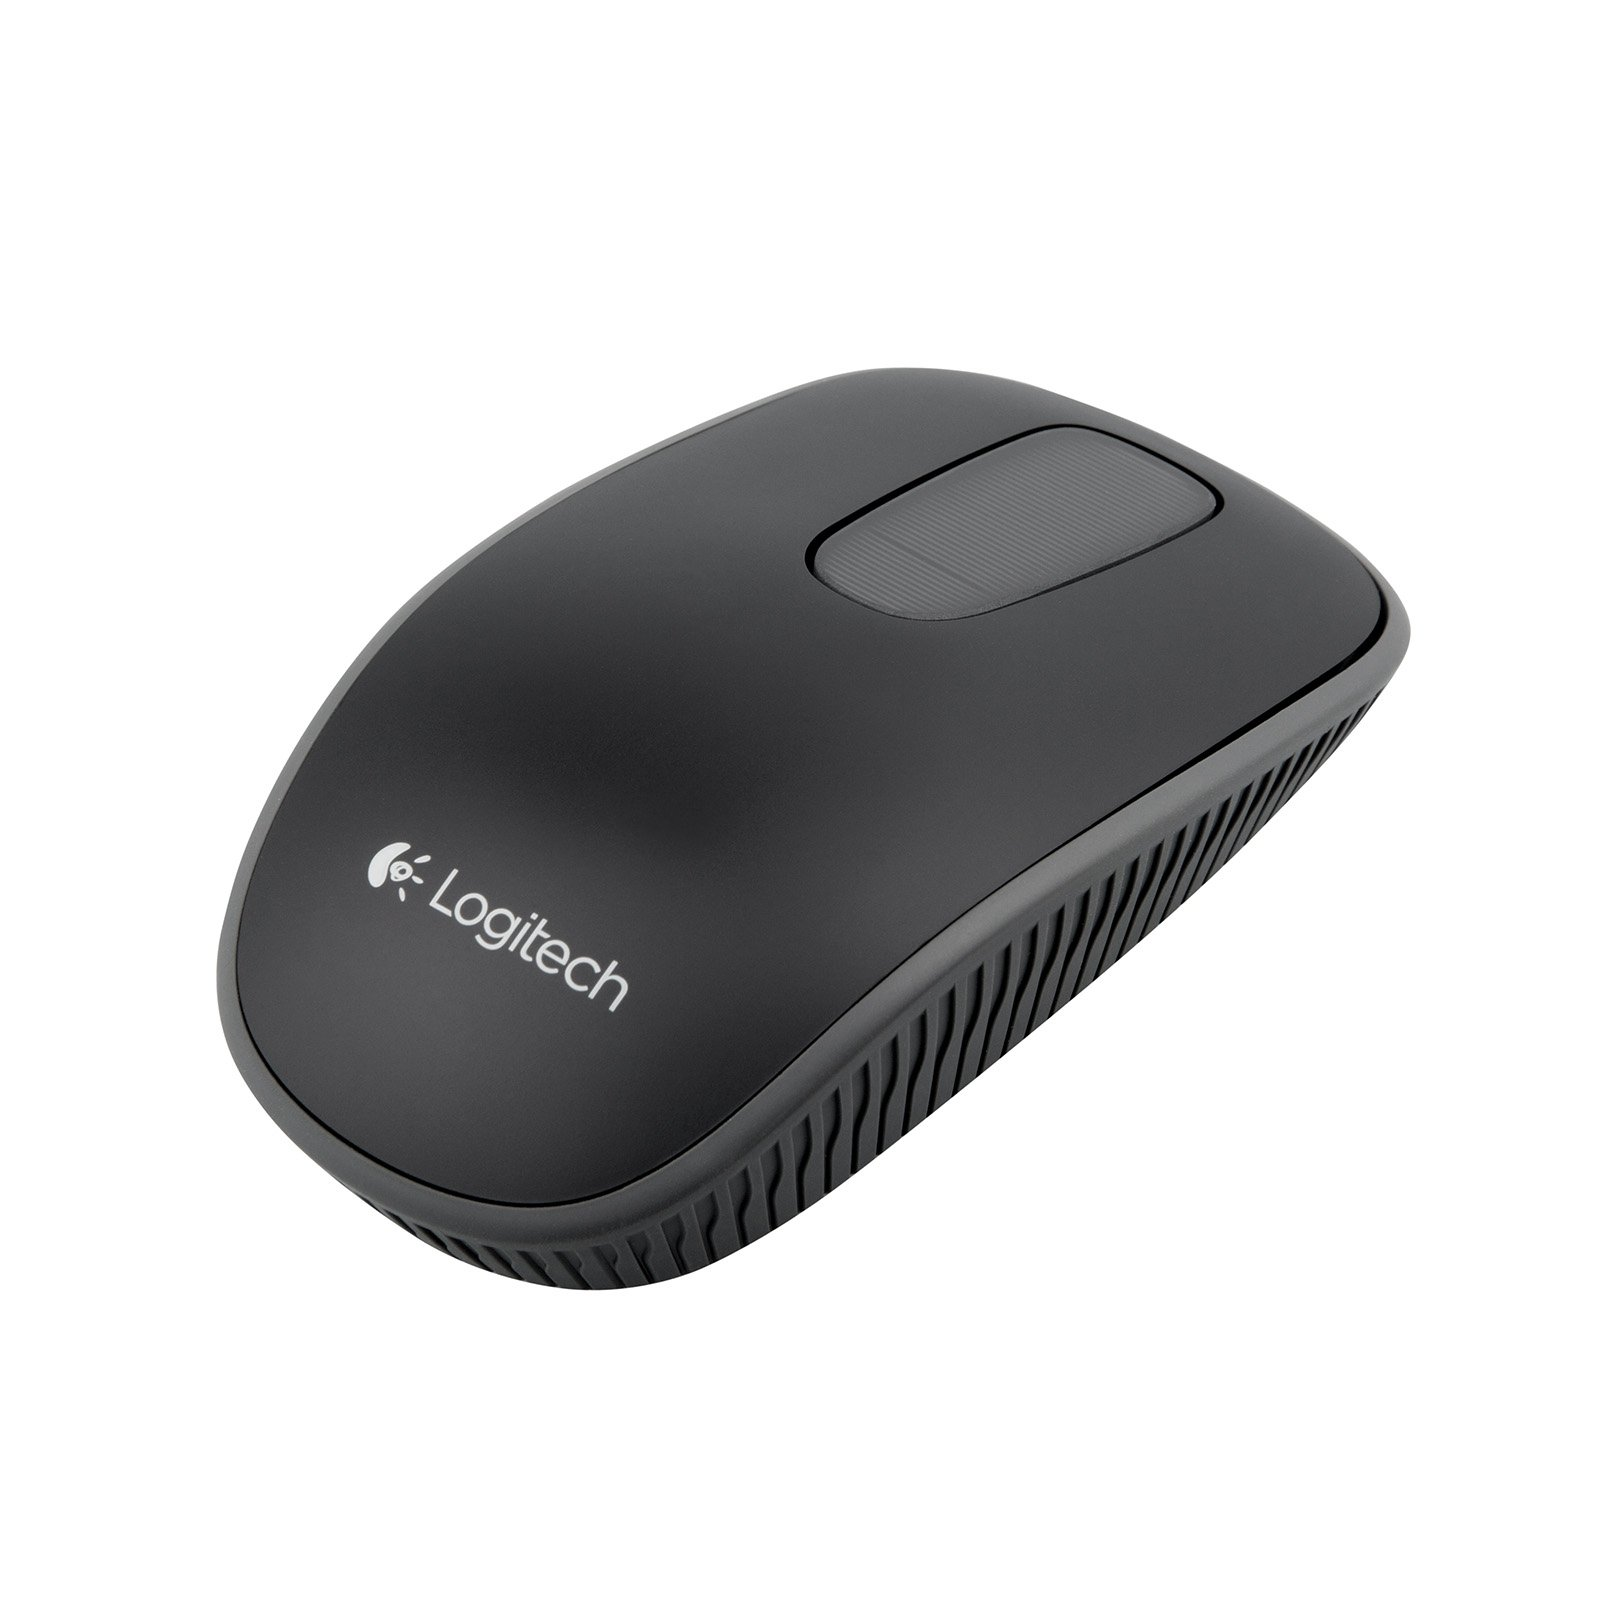 Logitech Zone Touch Mouse T400 for Windows 8 - Black (Certified Refurbished) by Logitech (Image #2)